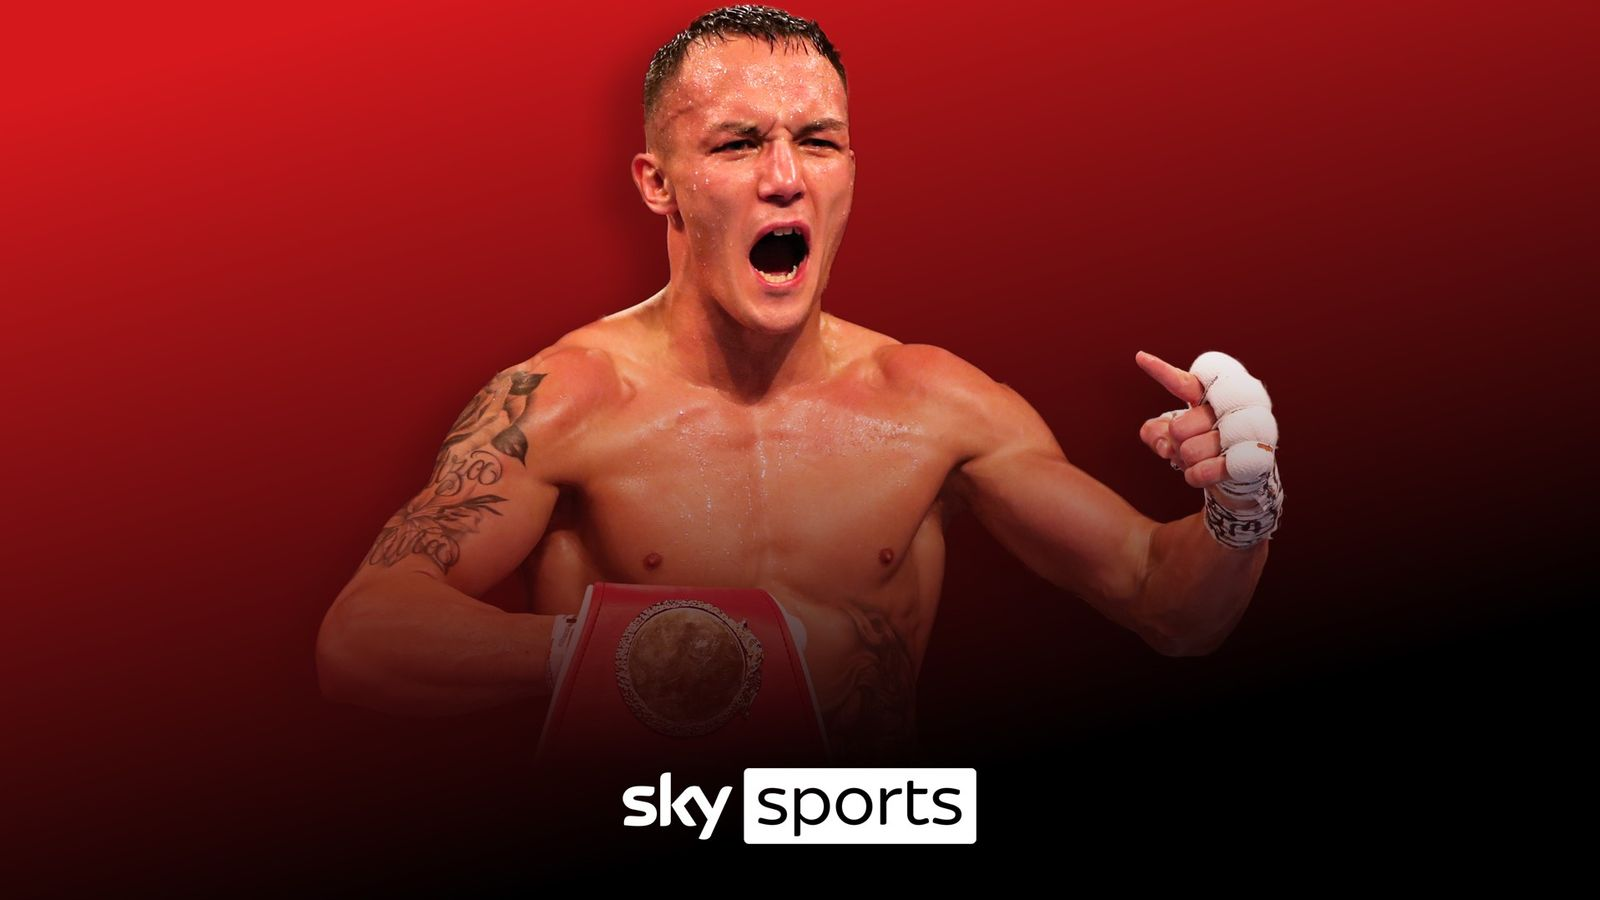 Josh Warrington's weigh-in will be streamed live ahead of Saturday's fight with Mauricio Lara